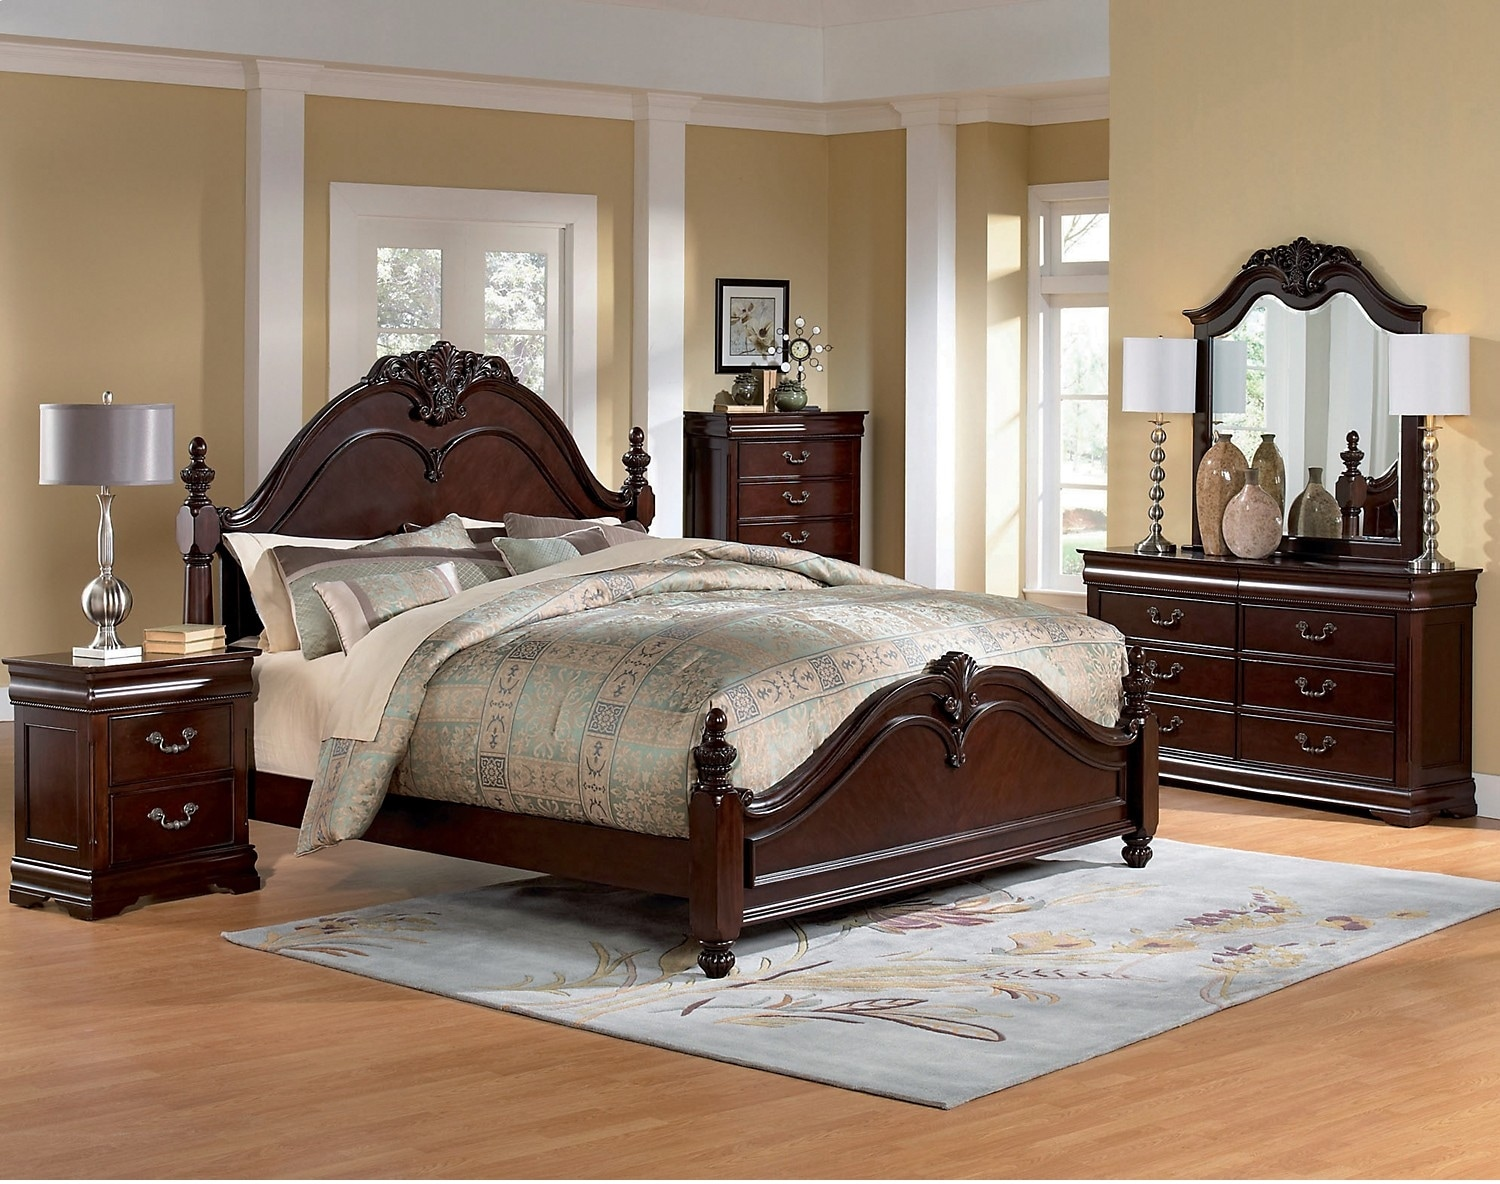 Bedroom Furniture - Westchester 6-Piece Queen Bedroom Set